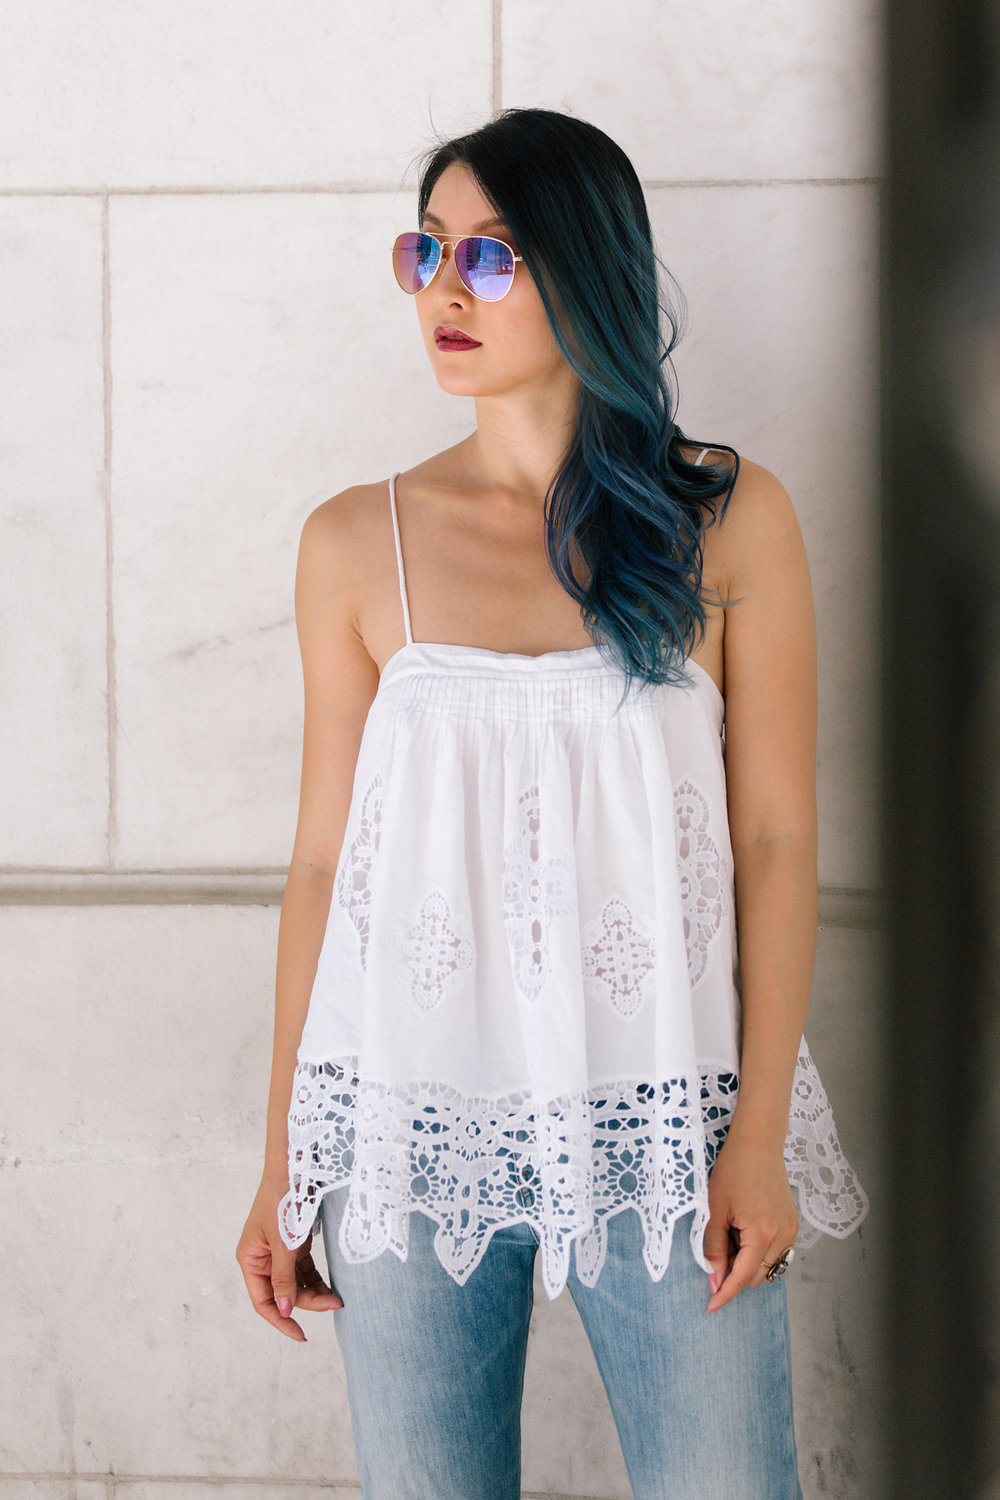 bluehair_lacetop2.jpg